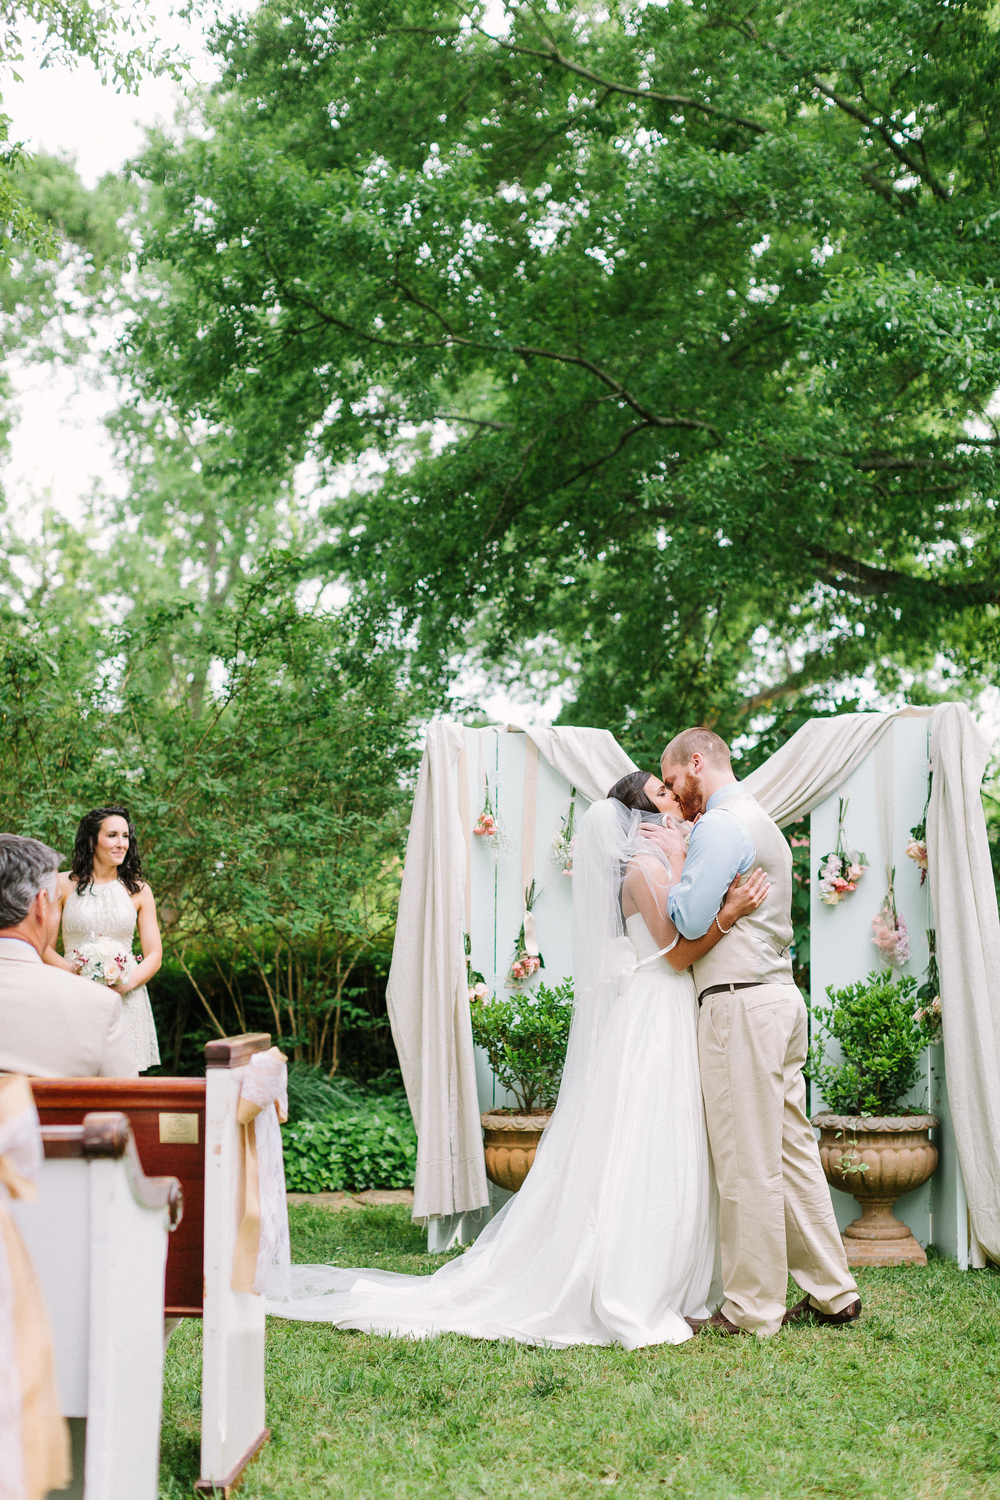 PEWS Wedding at Madison Oaks Inn - Photo by Haley Sheffield Photography